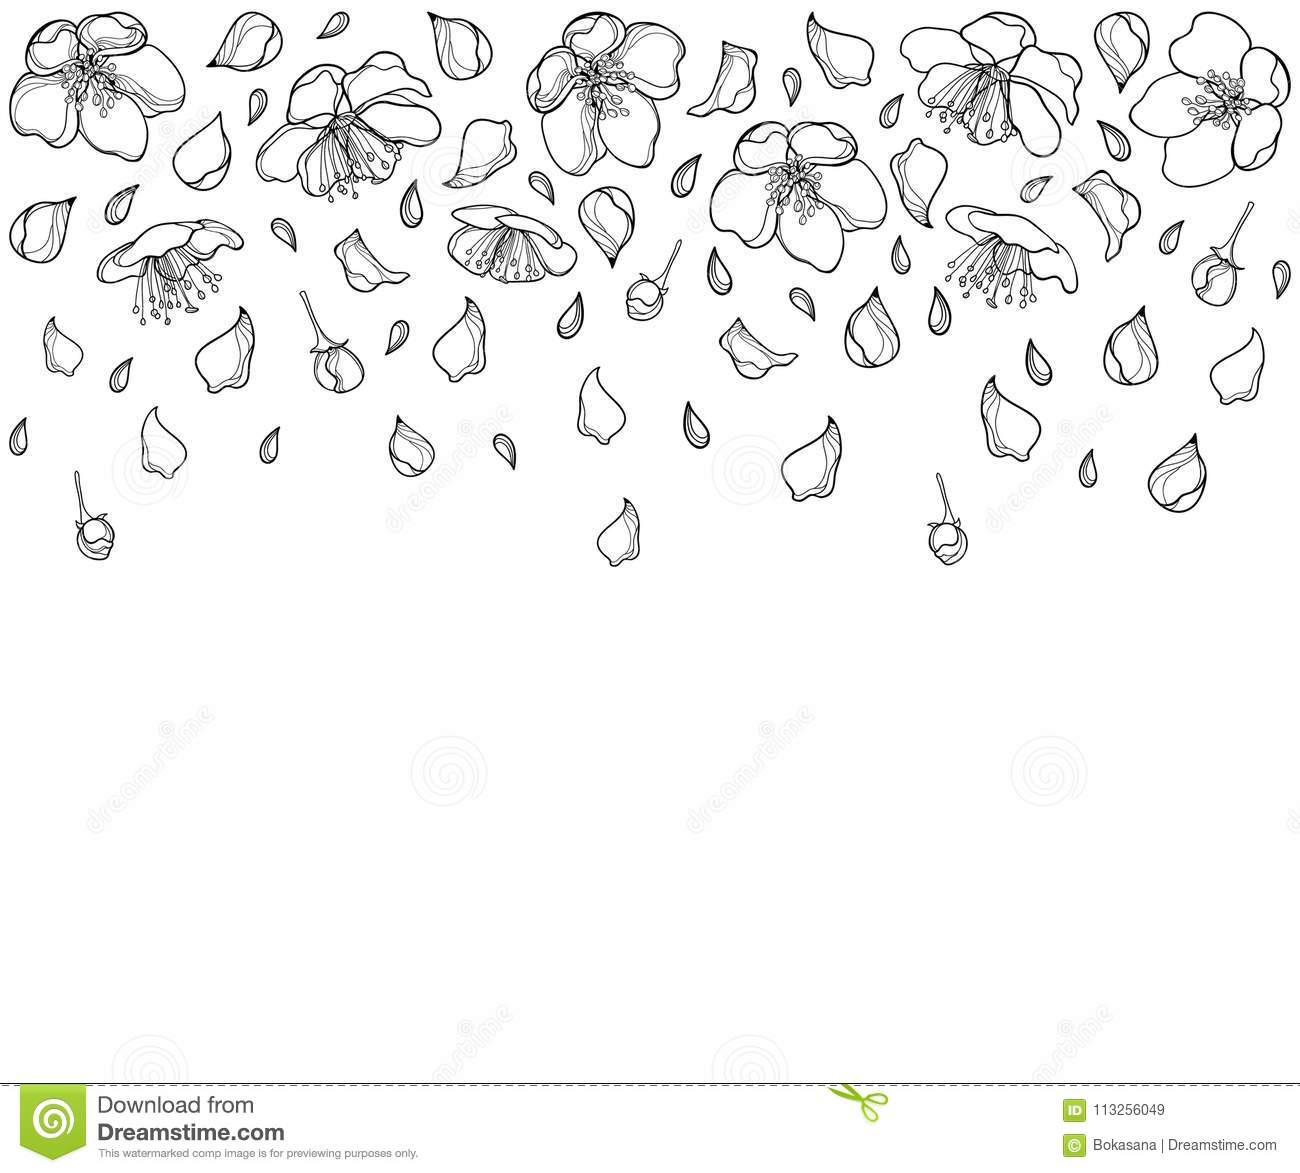 How To Draw Flower Petals Falling